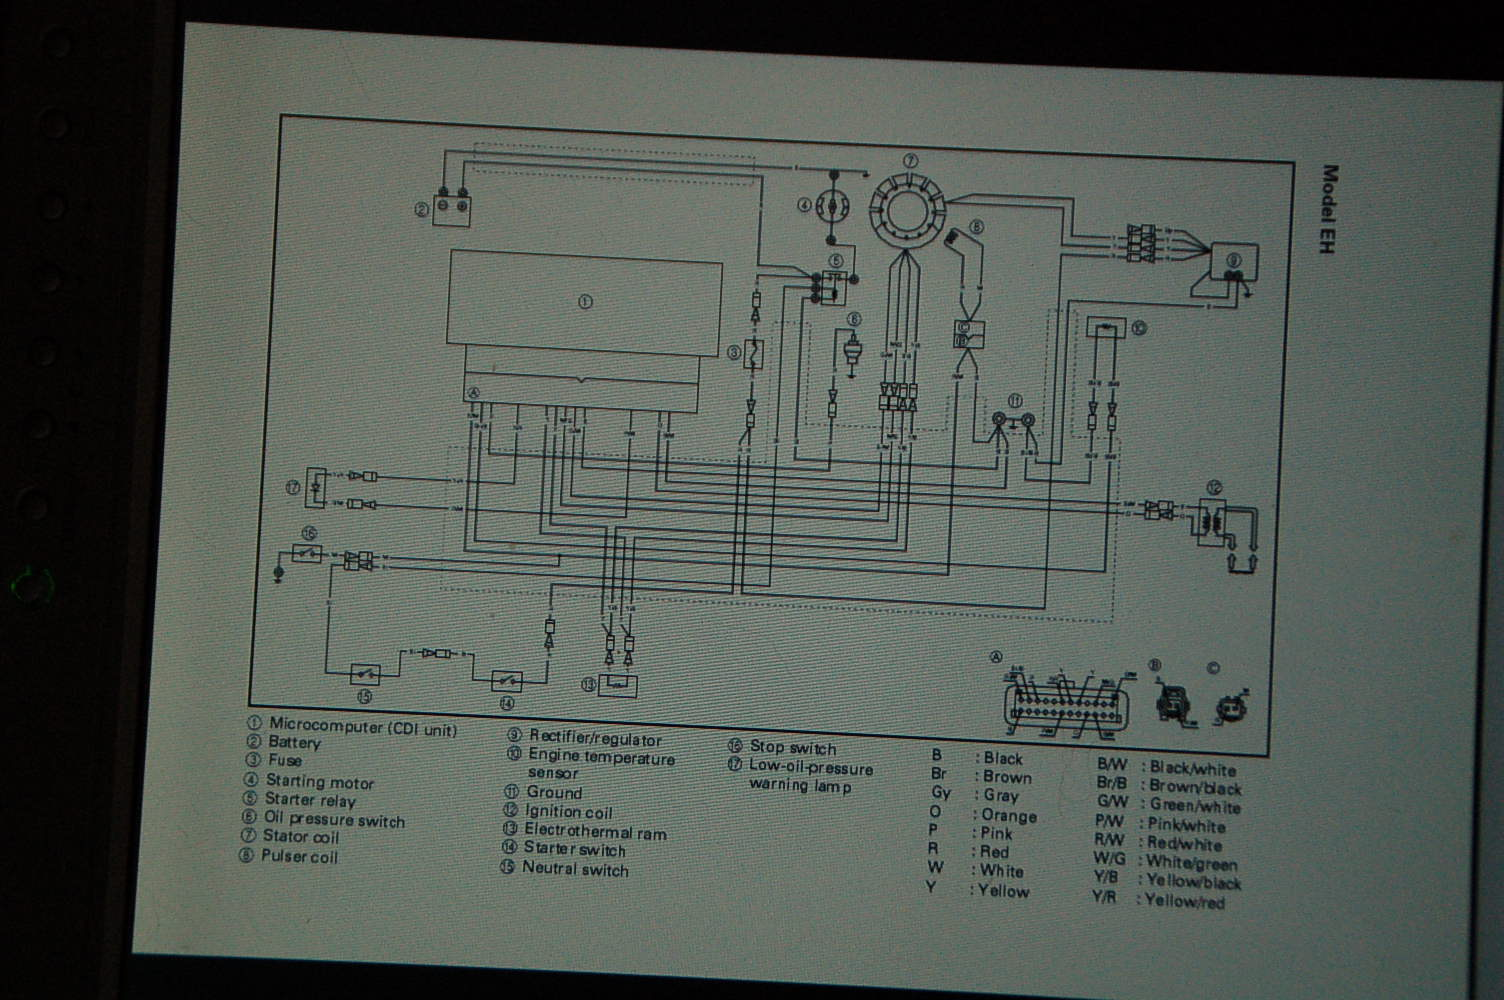 wiring up yamaha 30 boat design net yamaha wiring harness diagram at readyjetset.co